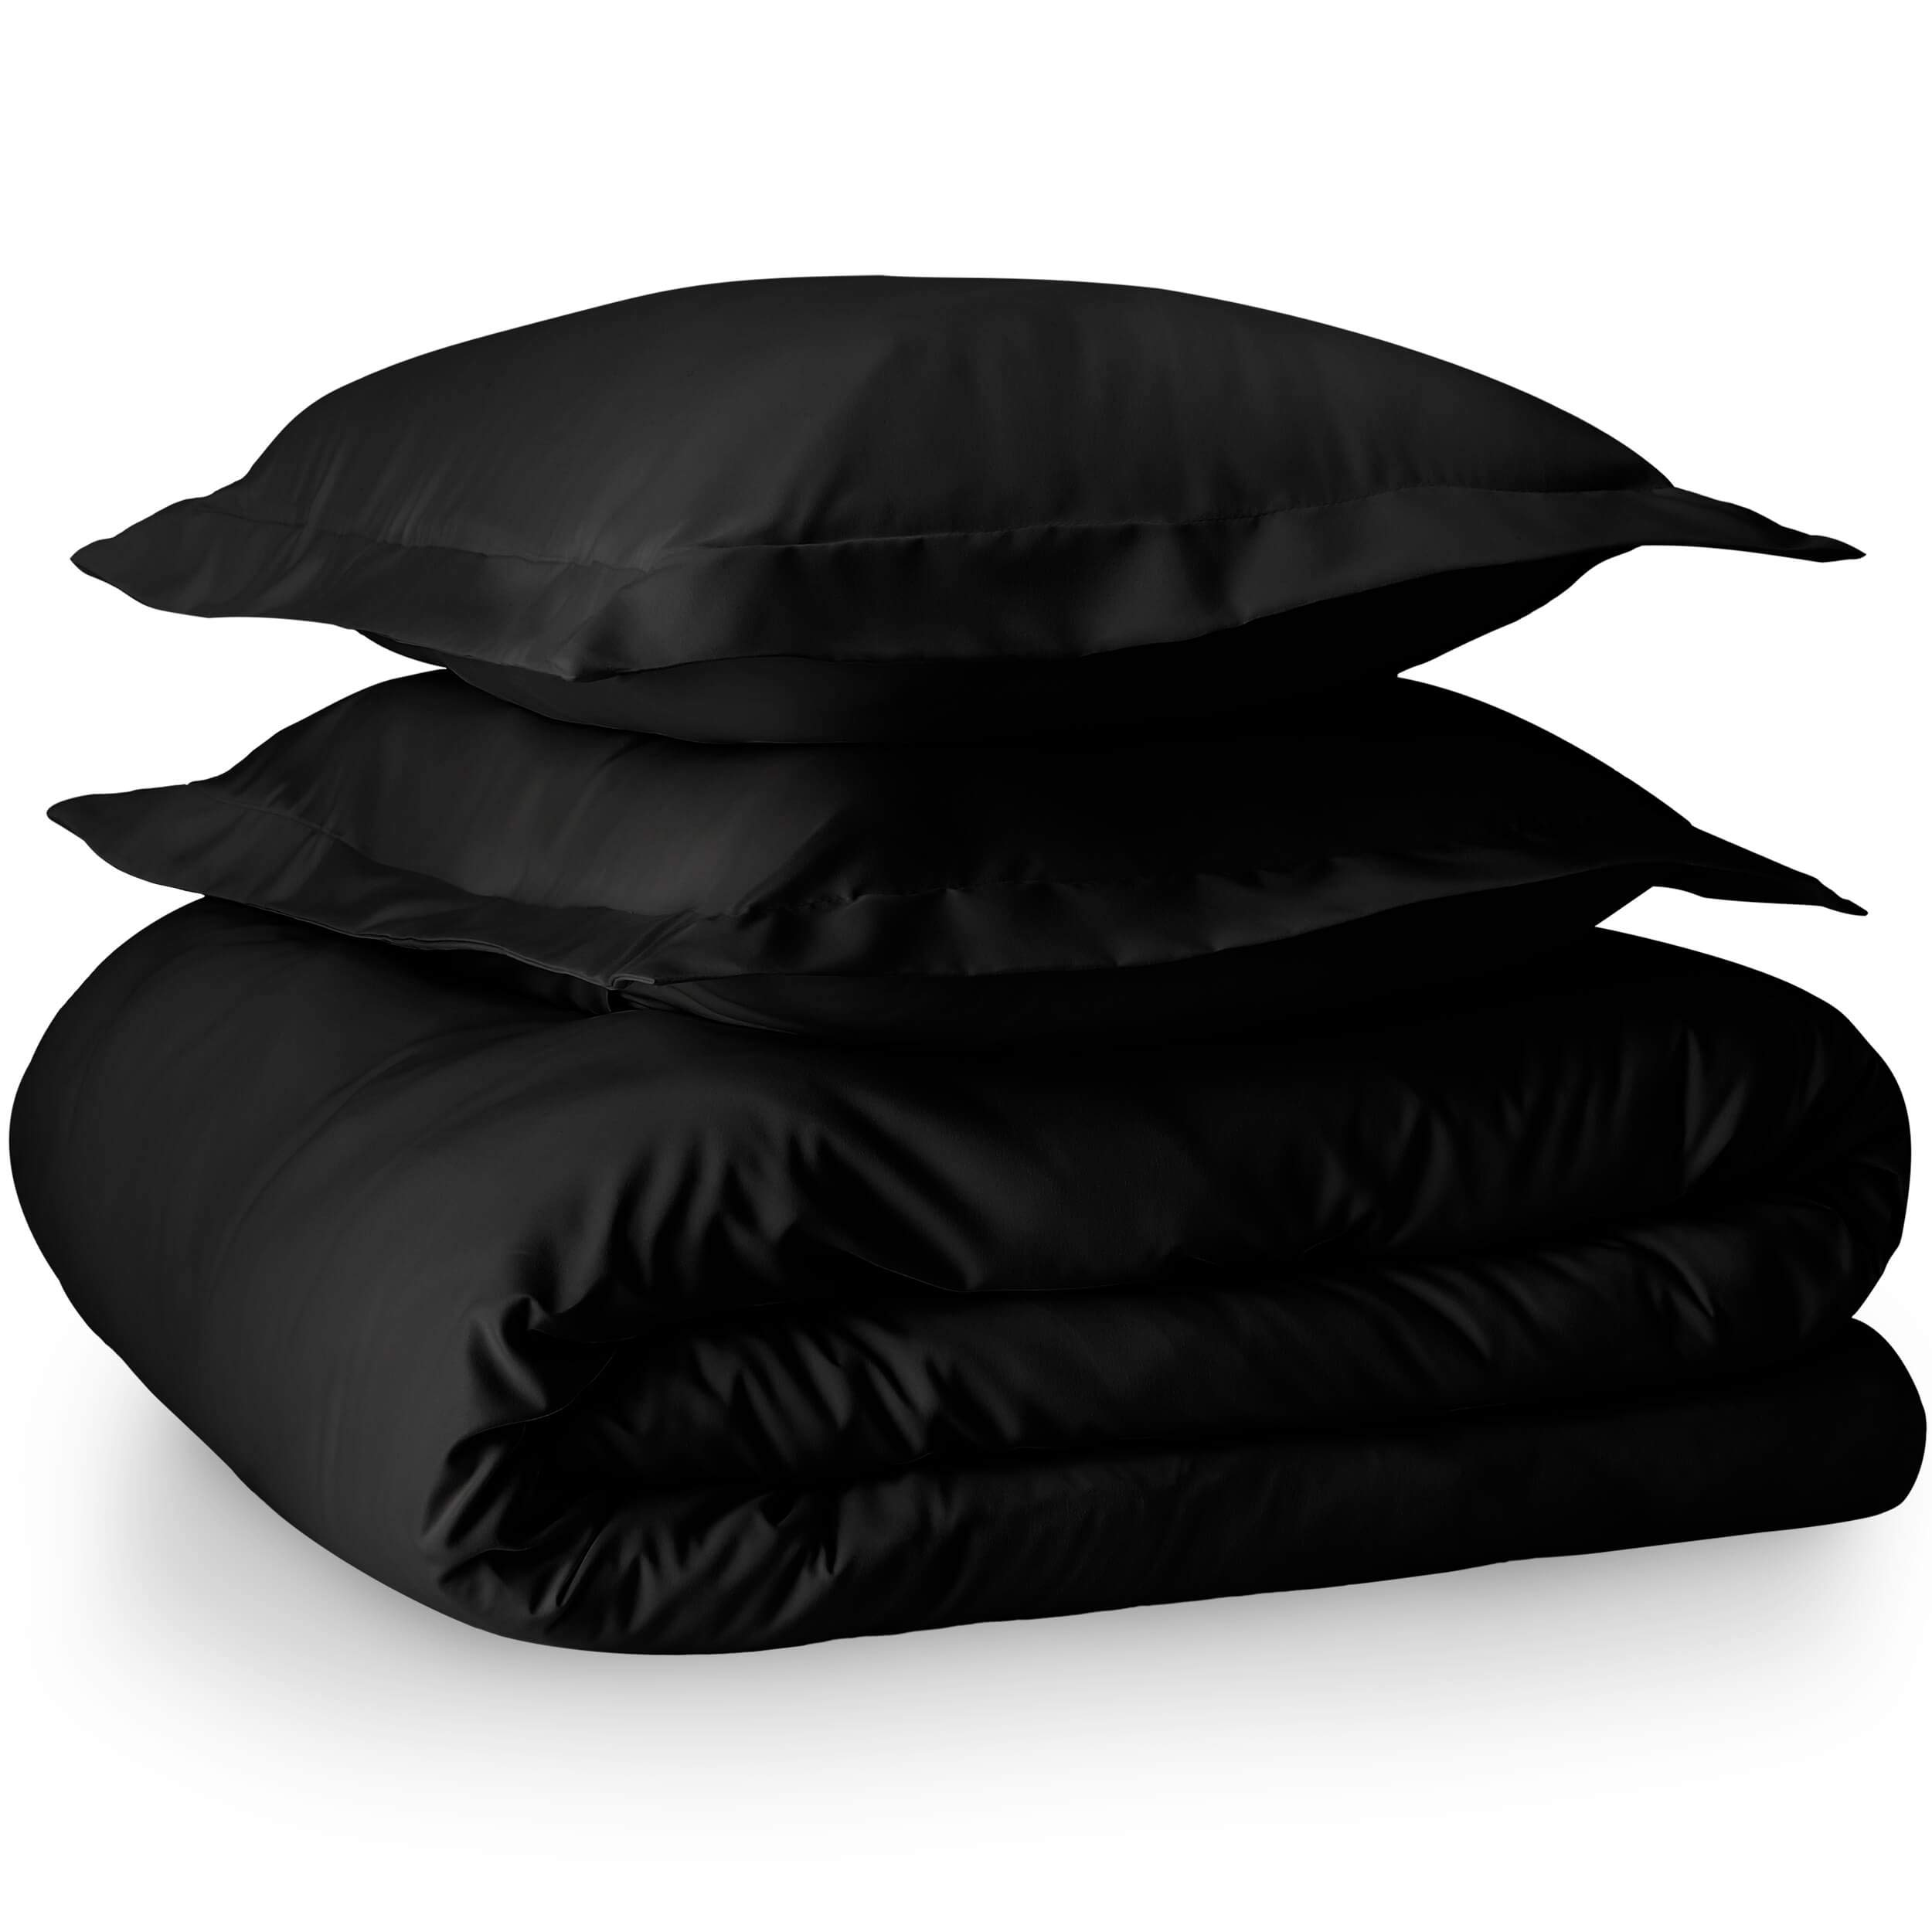 Bare Home Luxury 3 Piece Duvet Cover and Sham Set - Full/Queen - Premium 1800 Ultra-Soft Brushed Microfiber - Hypoallergenic, Easy Care, Wrinkle Resistant (Full/Queen, Black) by Bare Home (Image #3)